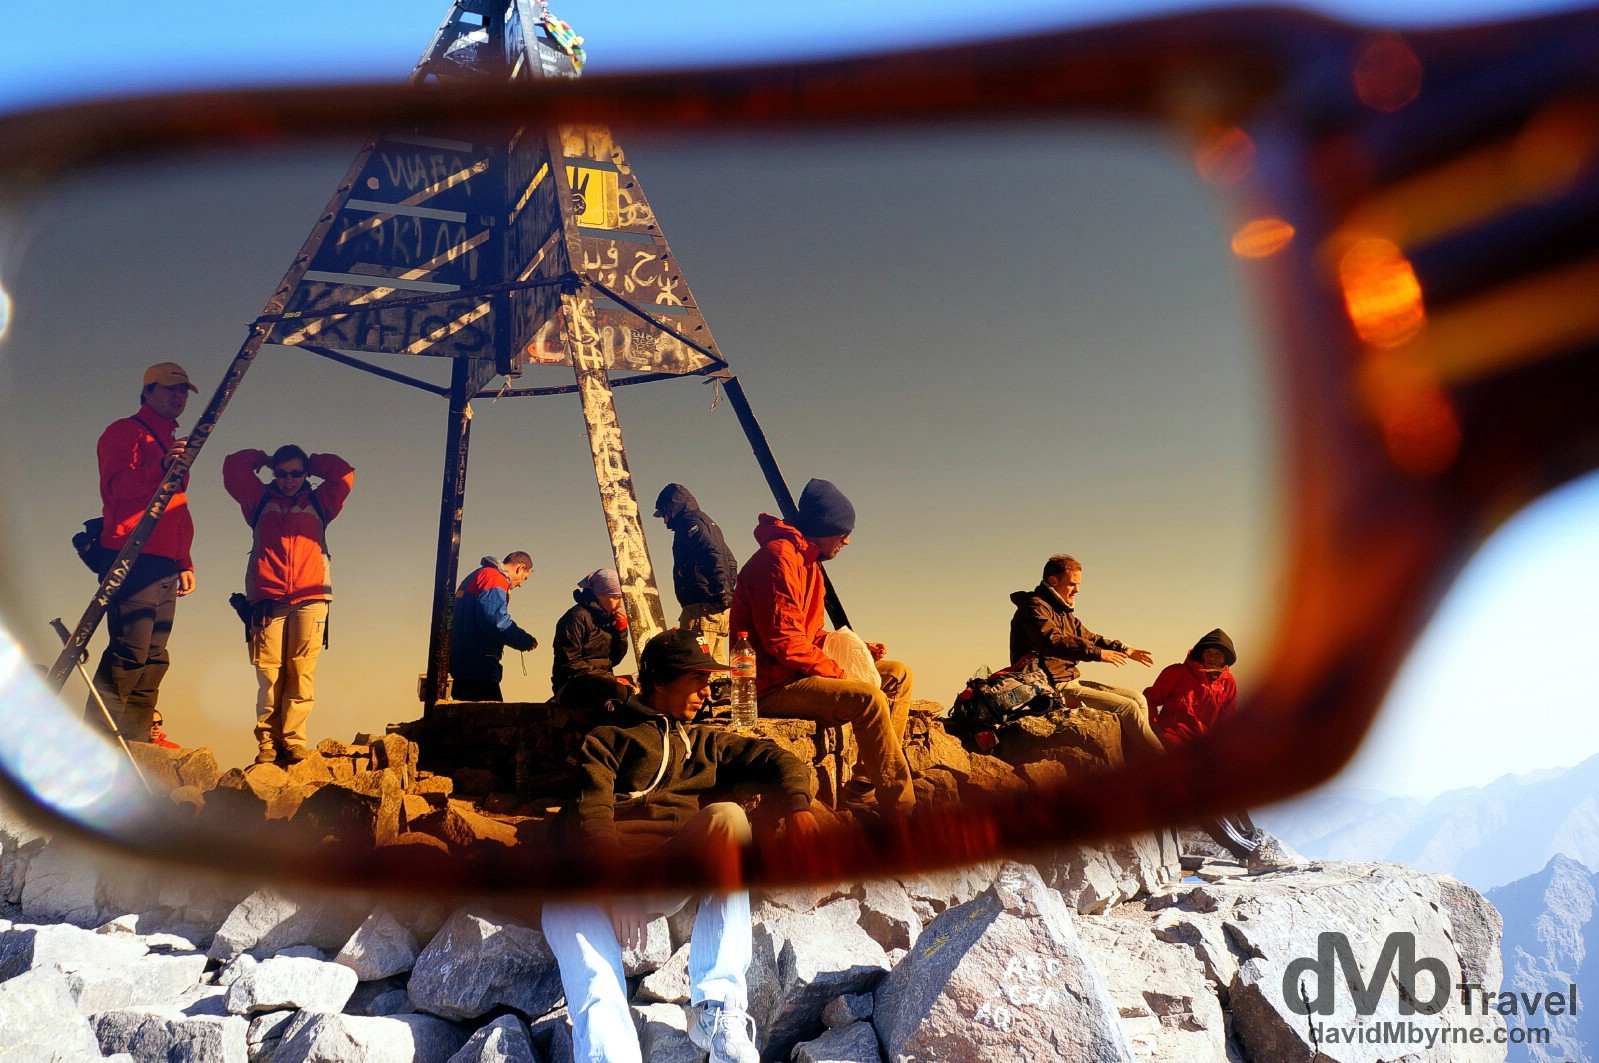 Trekkers at the 4,176-metre summit of Jebel Toubkal, the highest point in Northern Africa. Jebel Toubkal, High Atlas, central Morocco. May 12th, 2014.